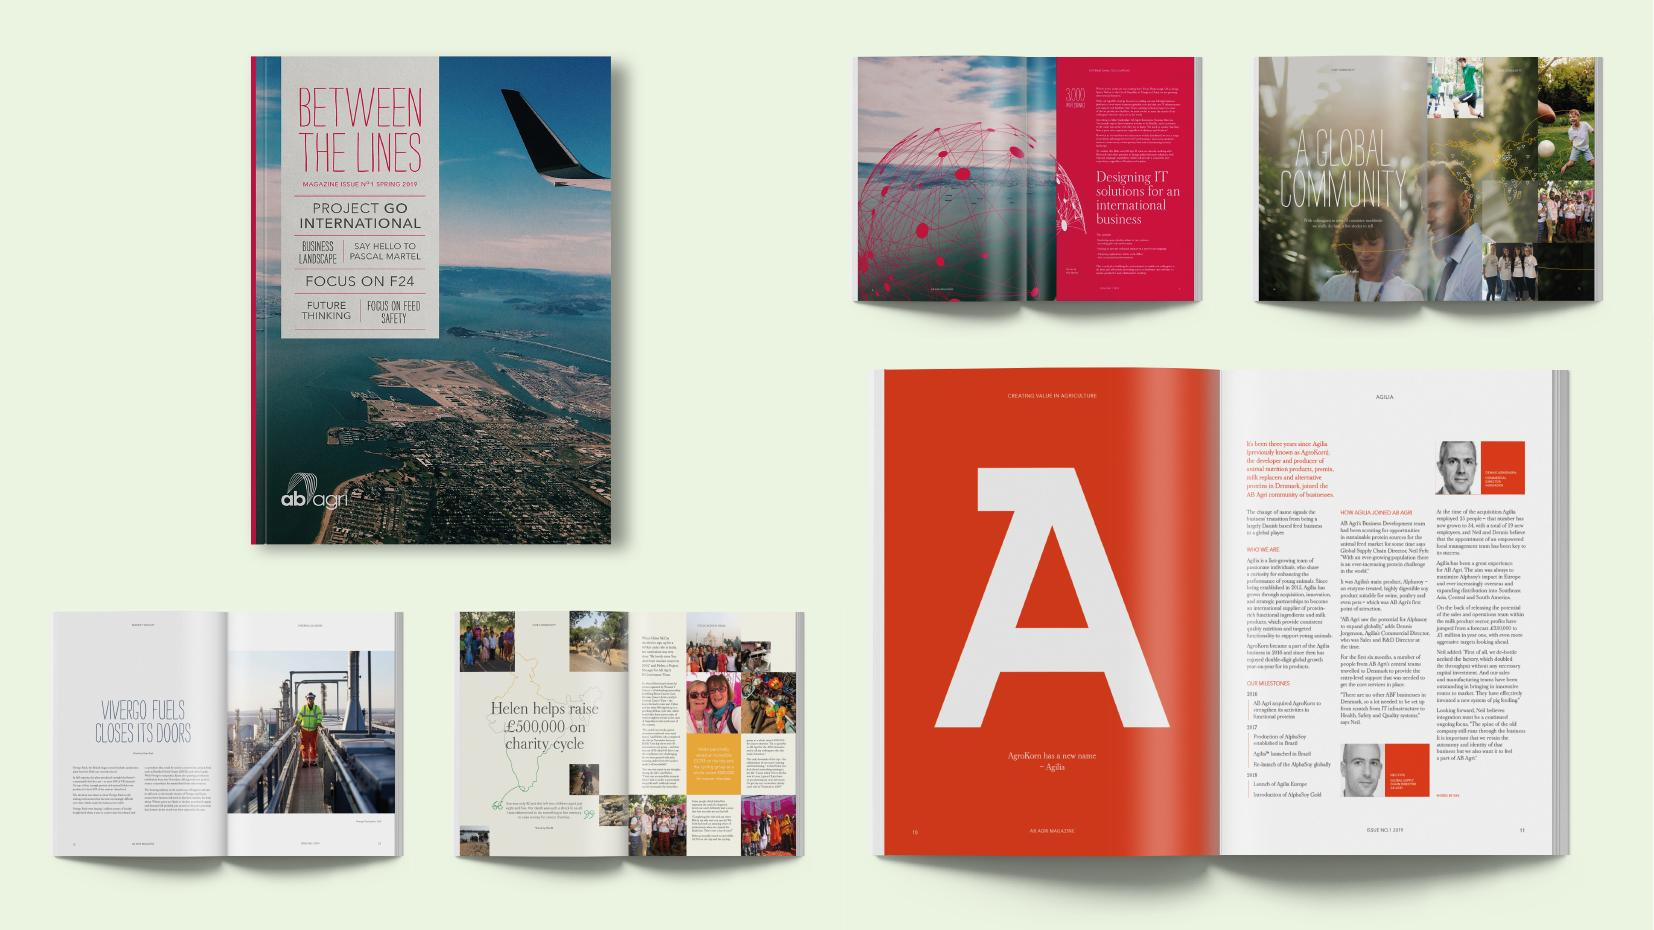 AB Agri internal magazine spreads